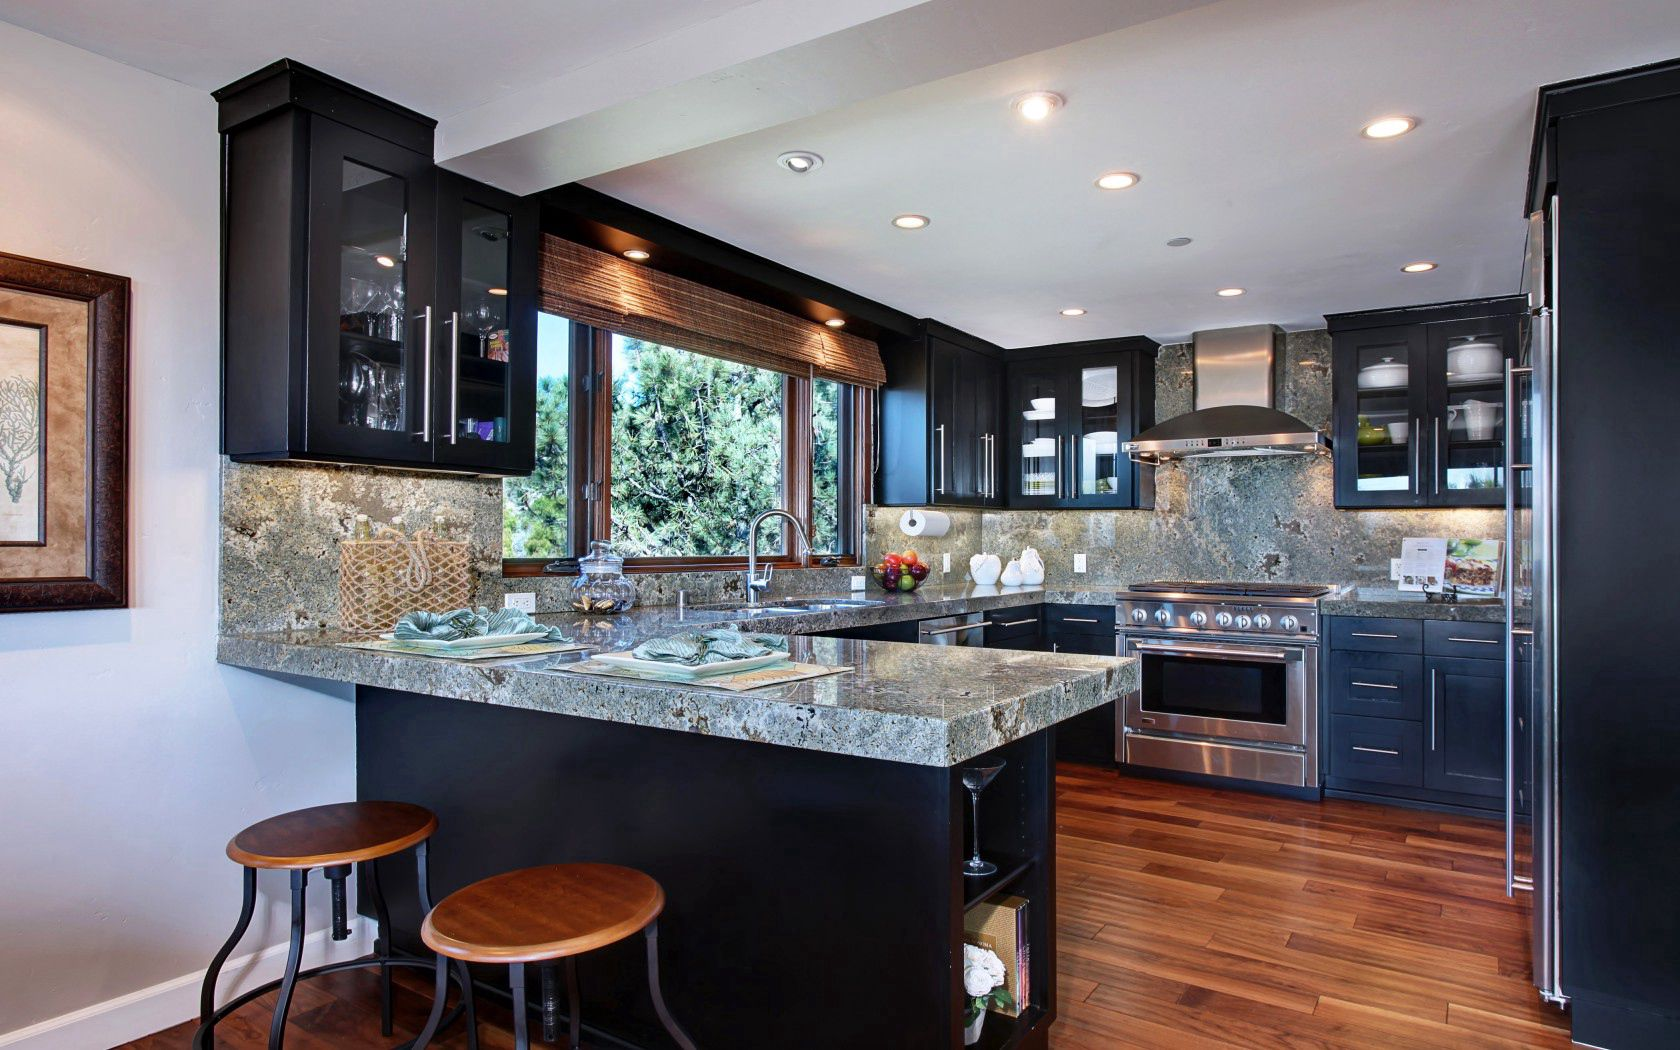 138343 download wallpaper Interior, Miscellanea, Miscellaneous, Design, Furniture, Kitchen screensavers and pictures for free